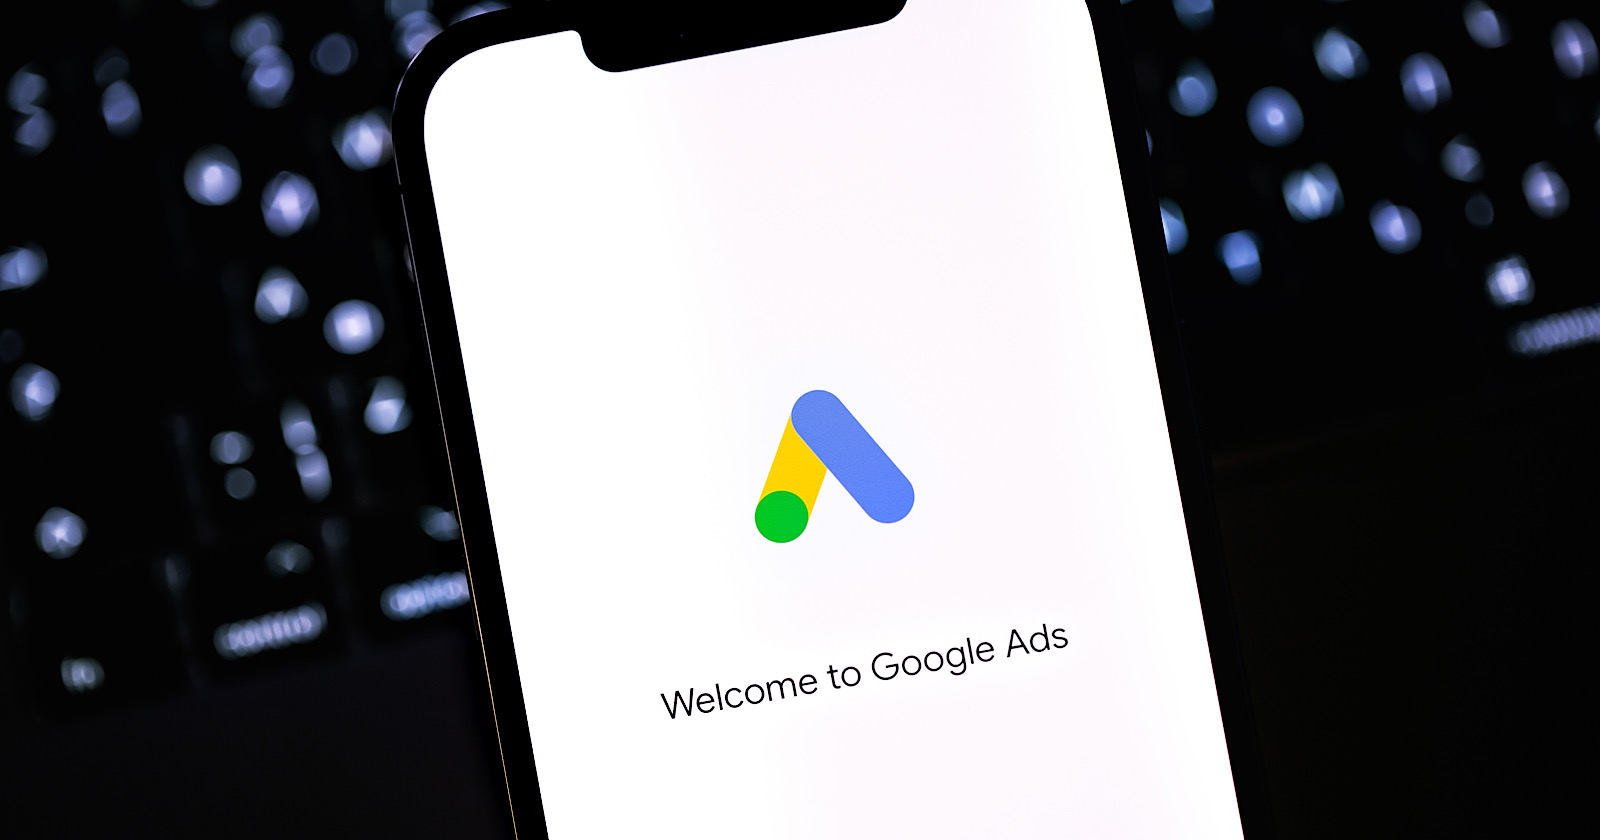 Google Ads App Gets New Features After 3 Months of No Updates via @MattGSouthern